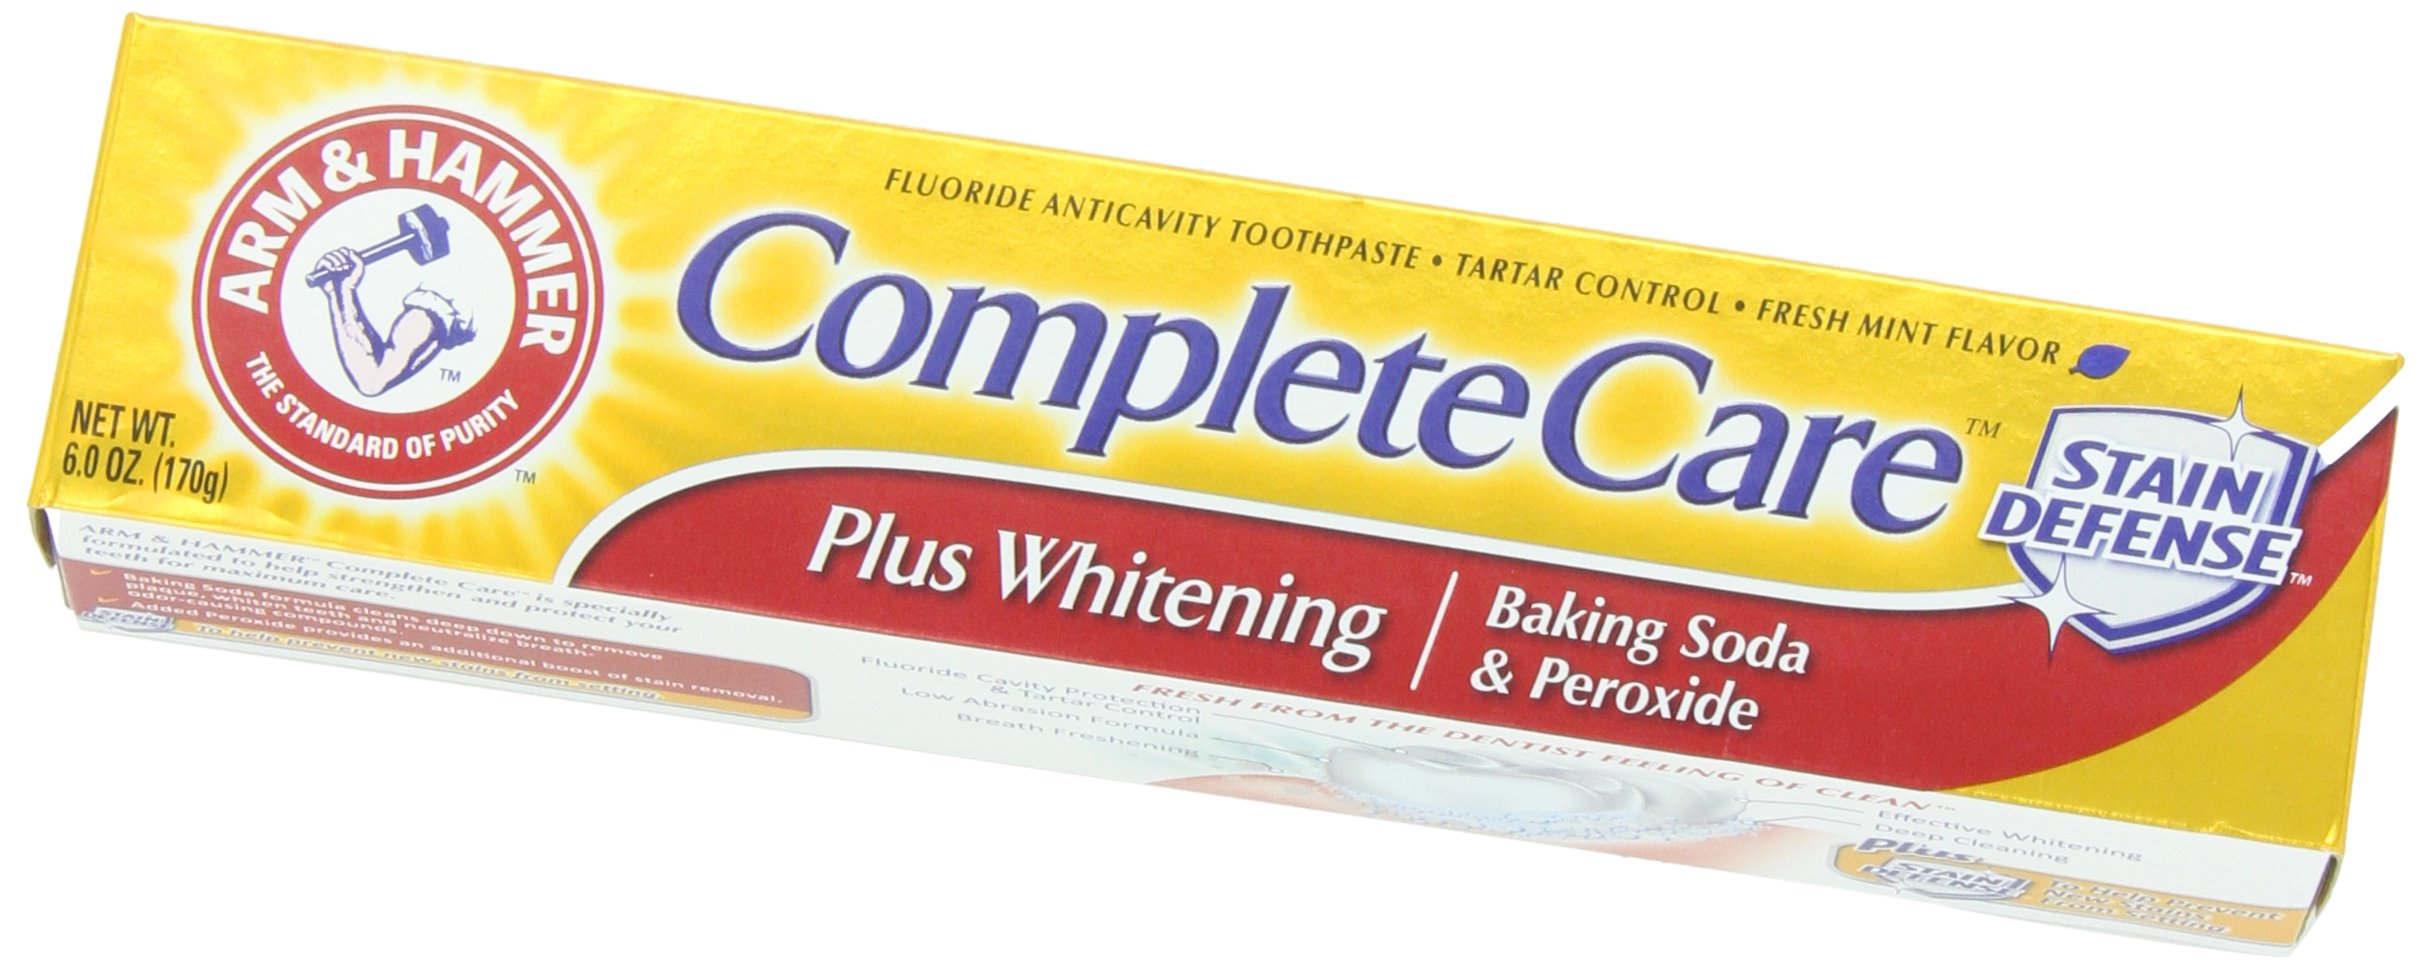 Arm & Hammer Complete Care Toothpaste, 6 oz (Pack of 6) (Packaging May Vary)